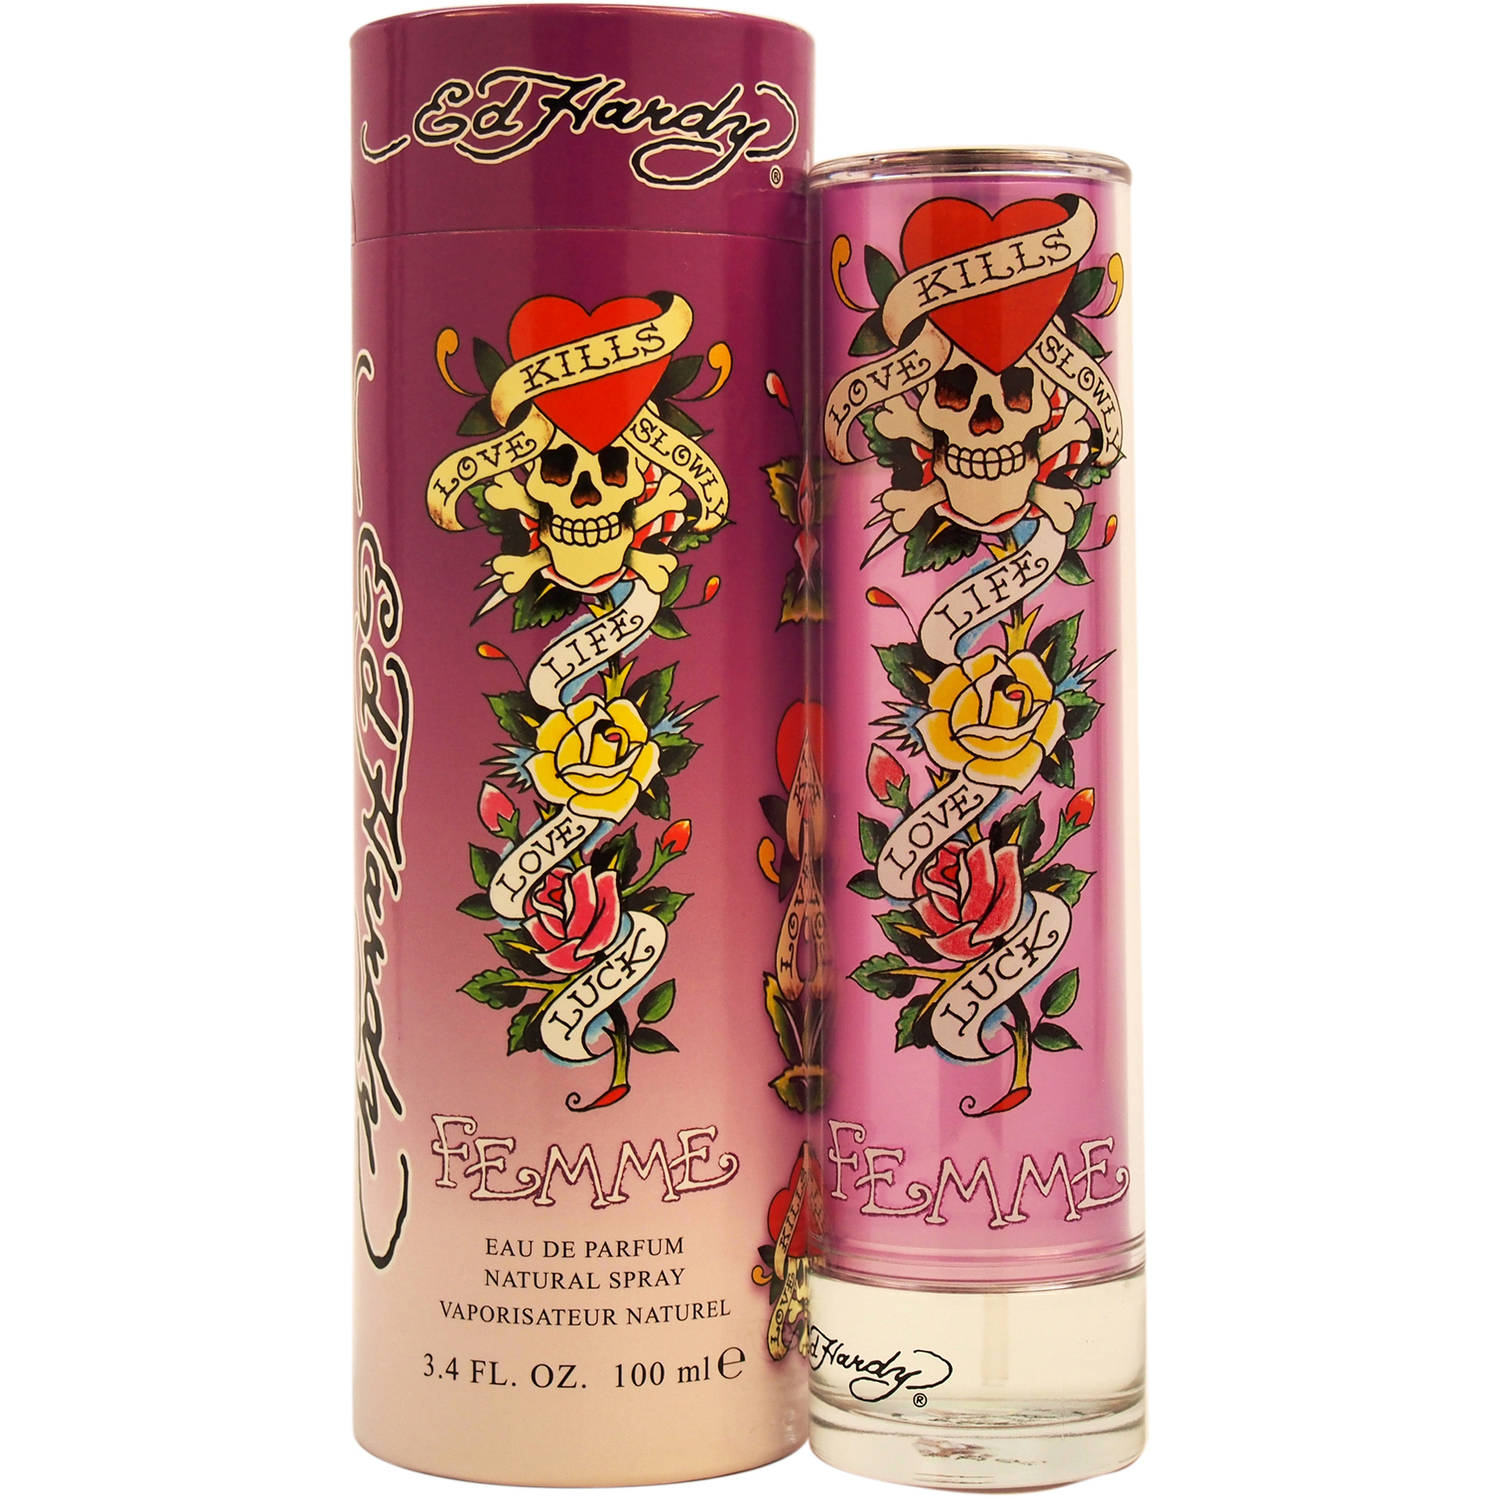 Ed Hardy Femme by Christian Audigier for Women - 3.4 oz EDP Spray